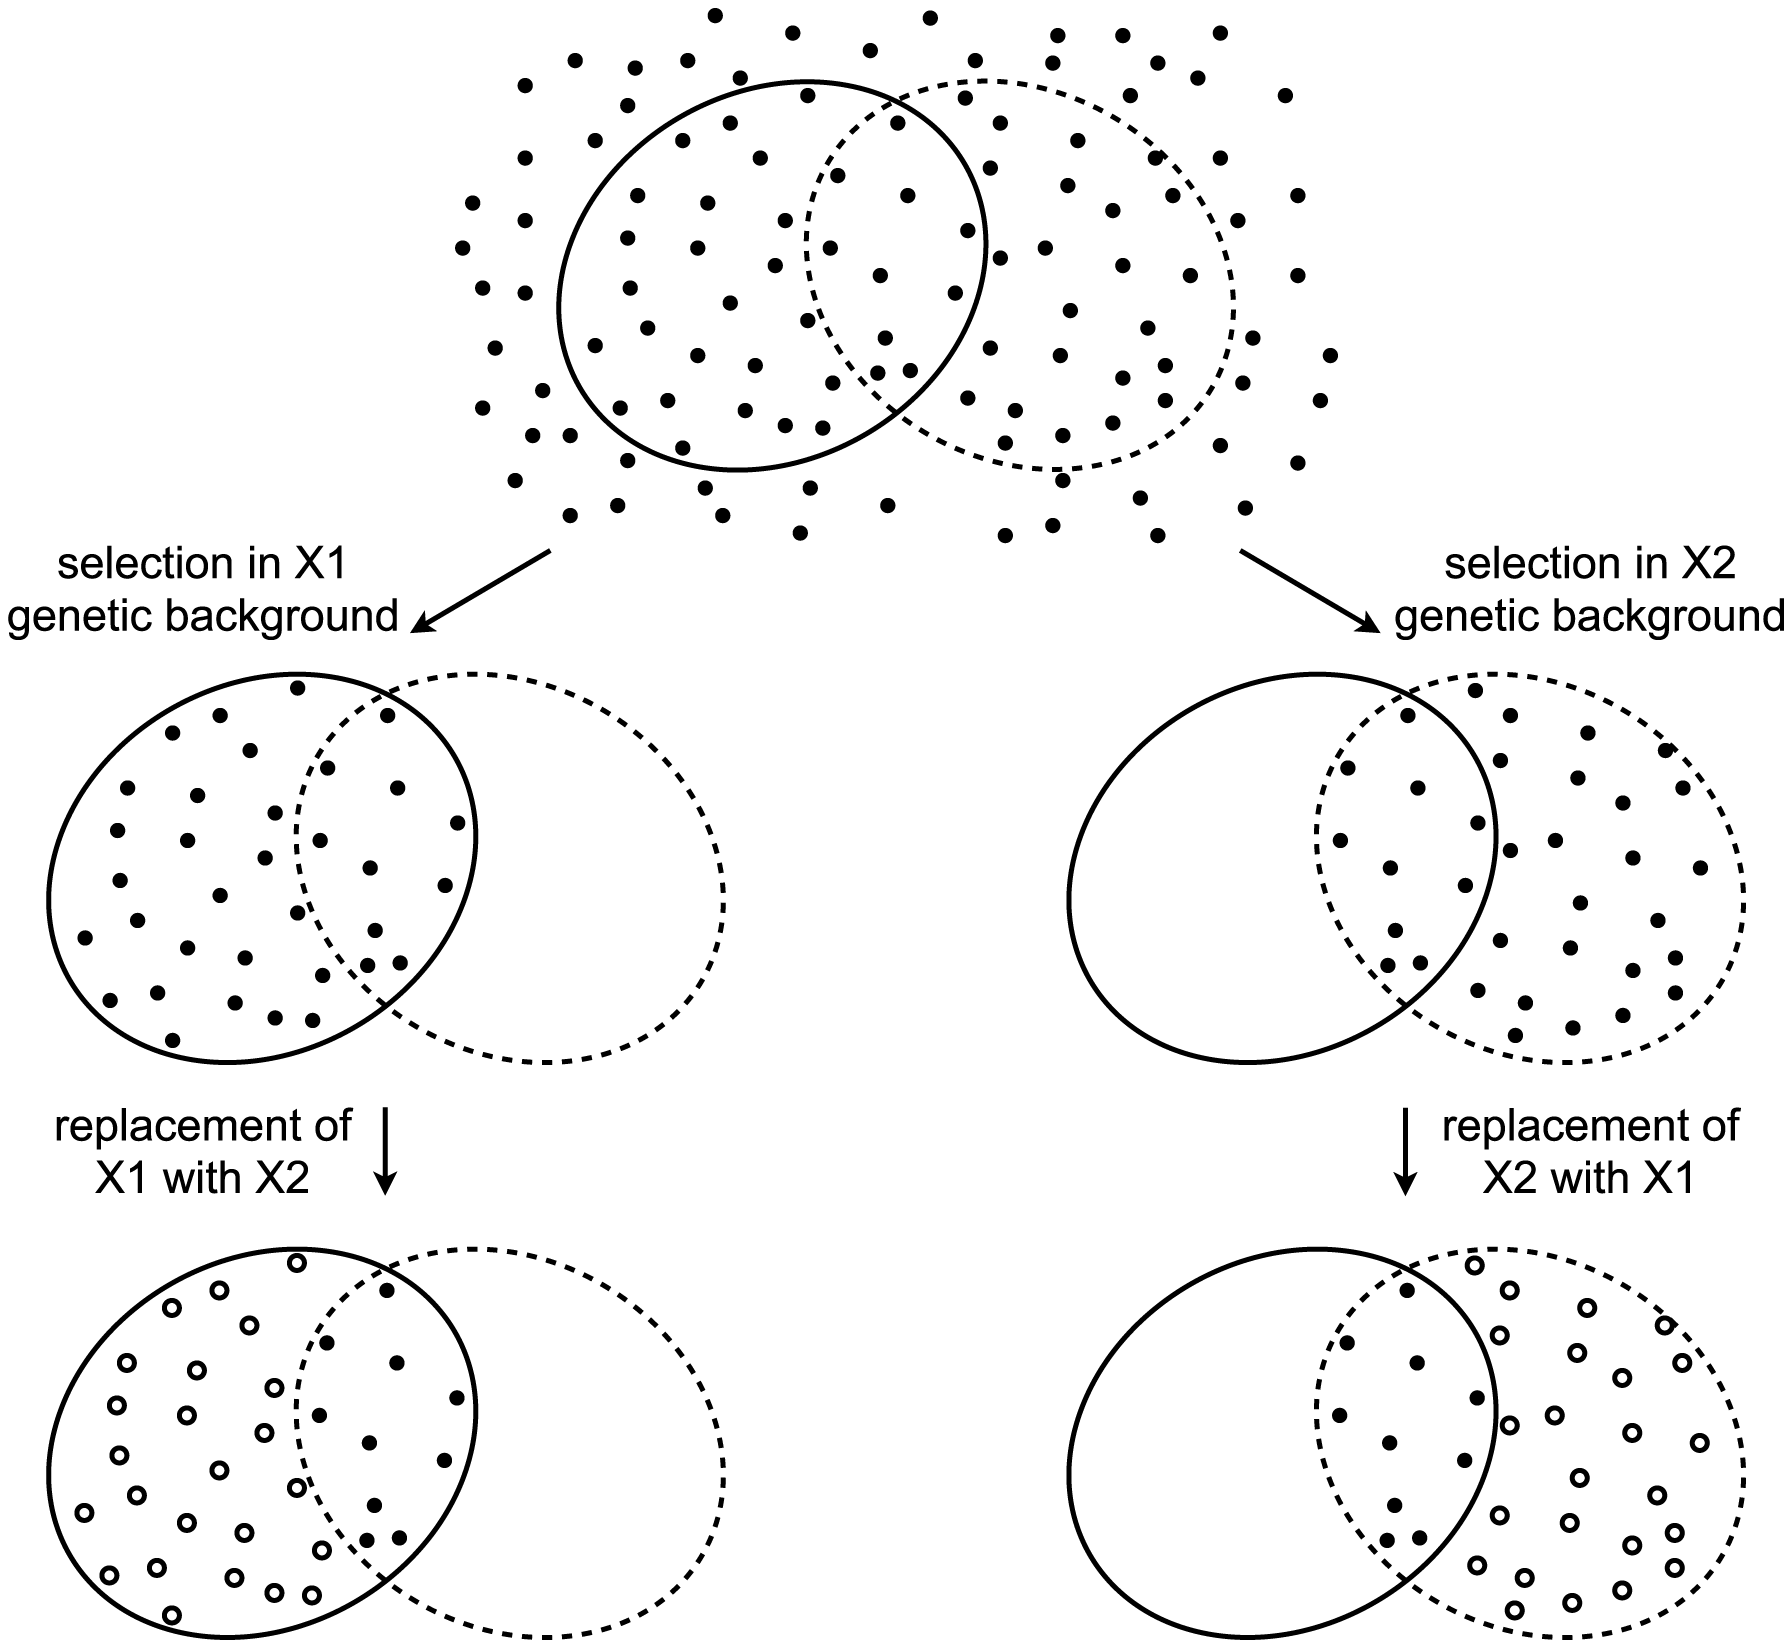 Revelation of cryptic genetic variation without a change in robustness.